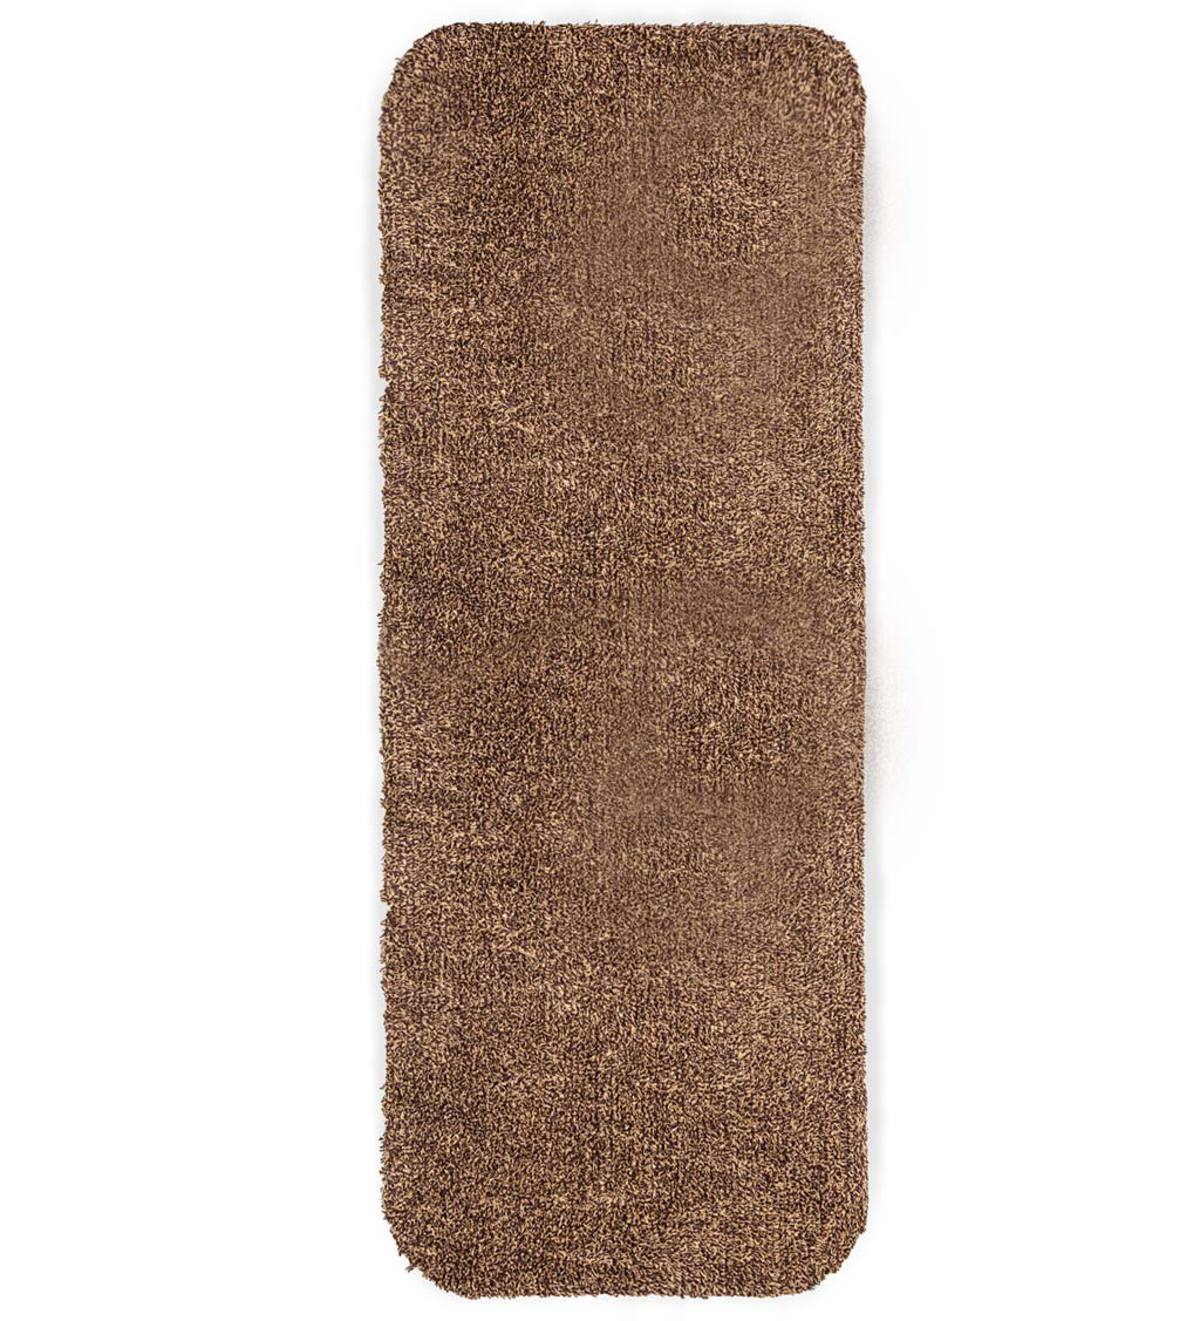 "Microfiber Mud Rug With Non-Skid Backing, 29"" x 58"" Runner - Brown"